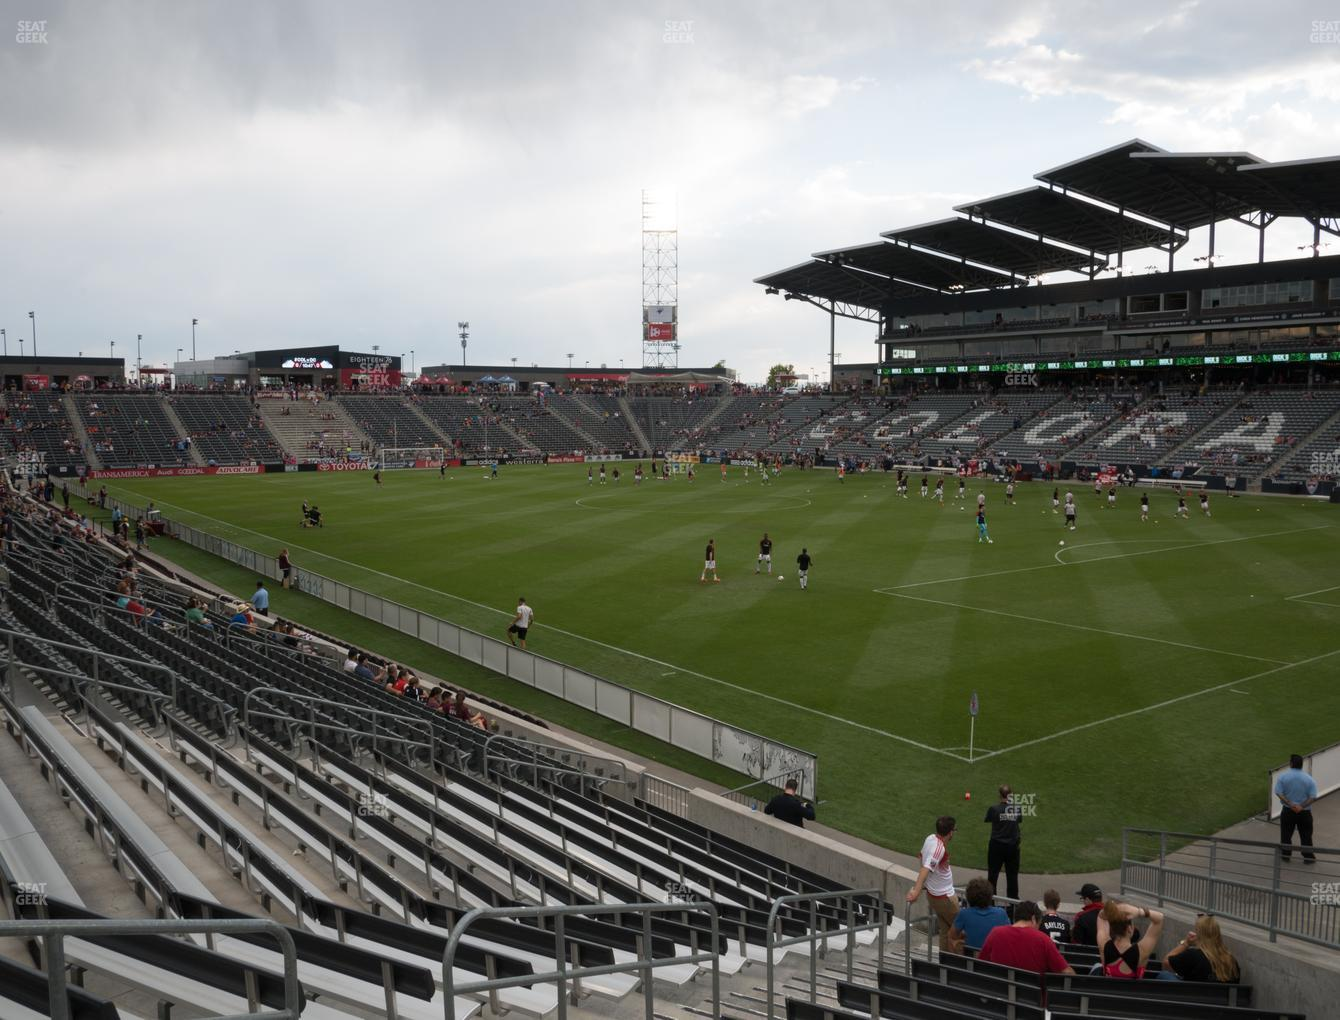 size 40 a1f8c 7d11e Dick's Sporting Goods Park Section 100 Seat Views | SeatGeek